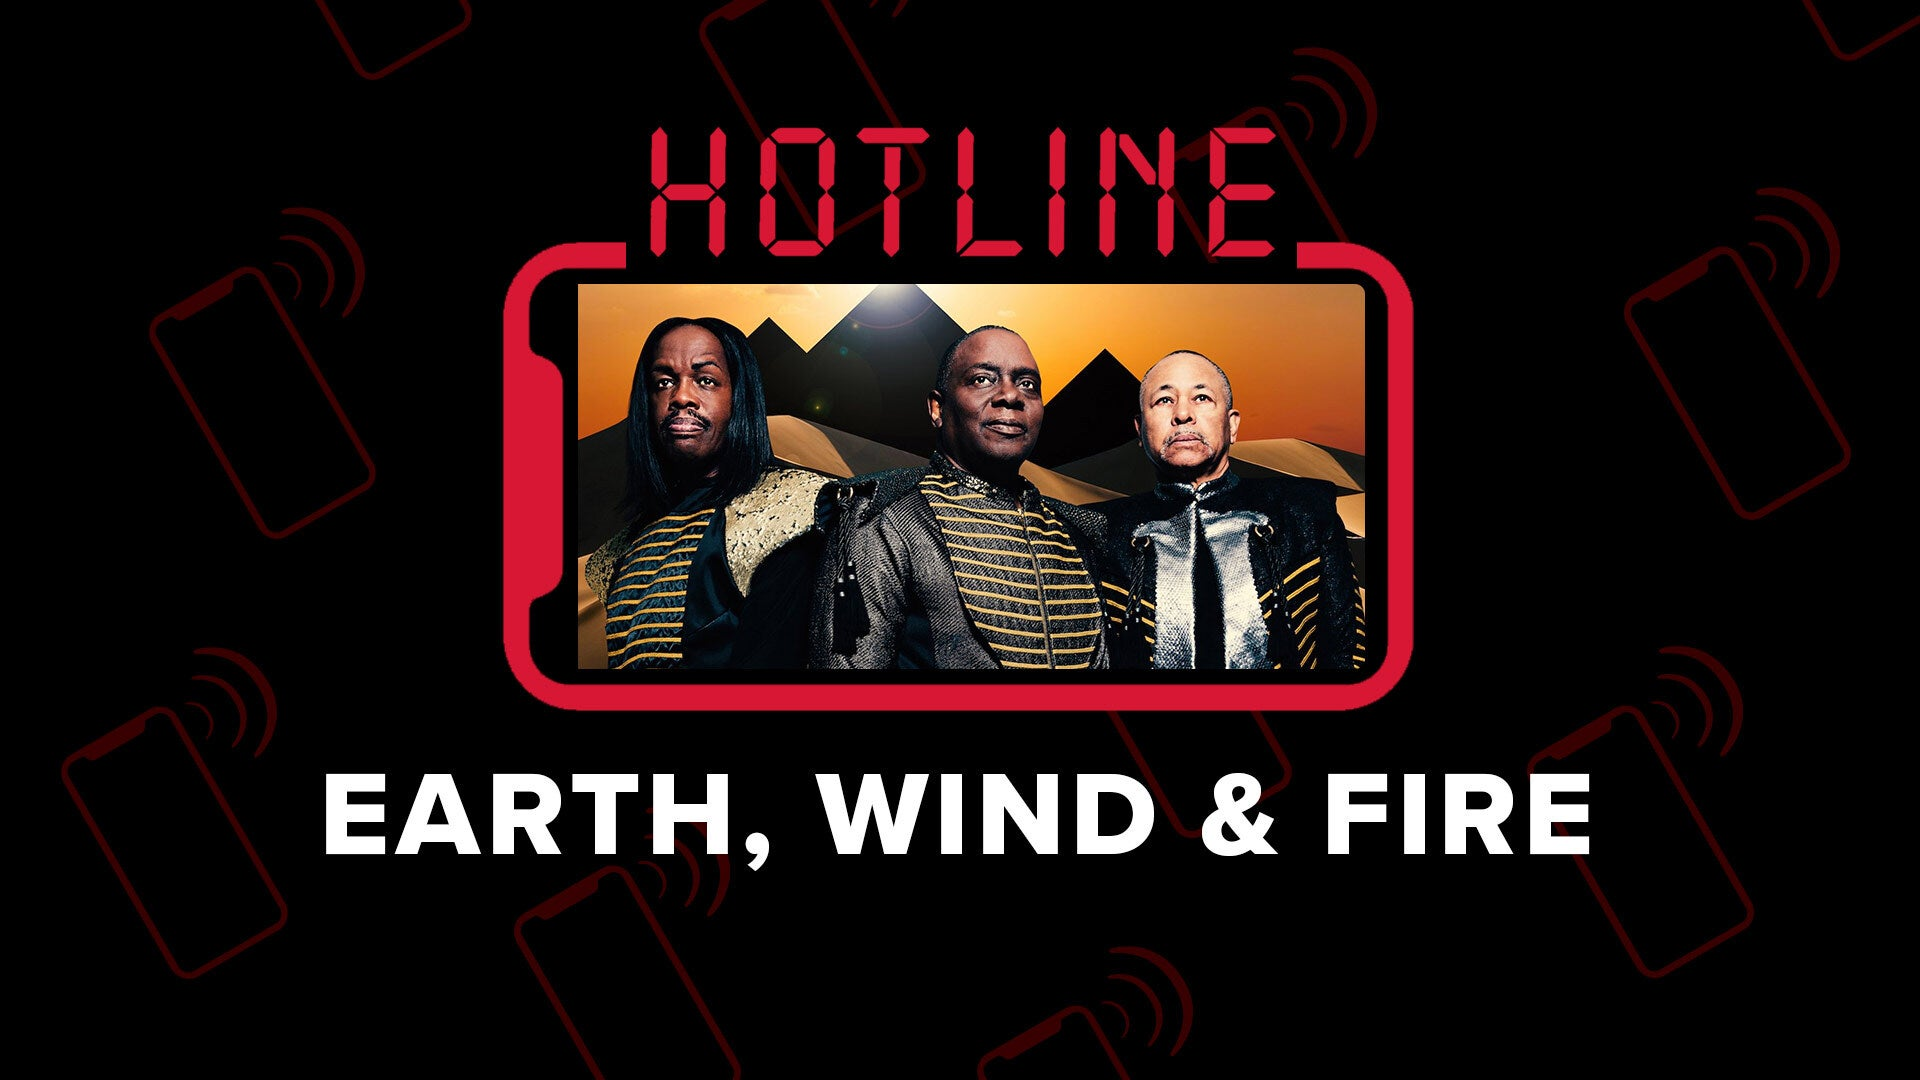 Hotline: Earth, Wind & Fire